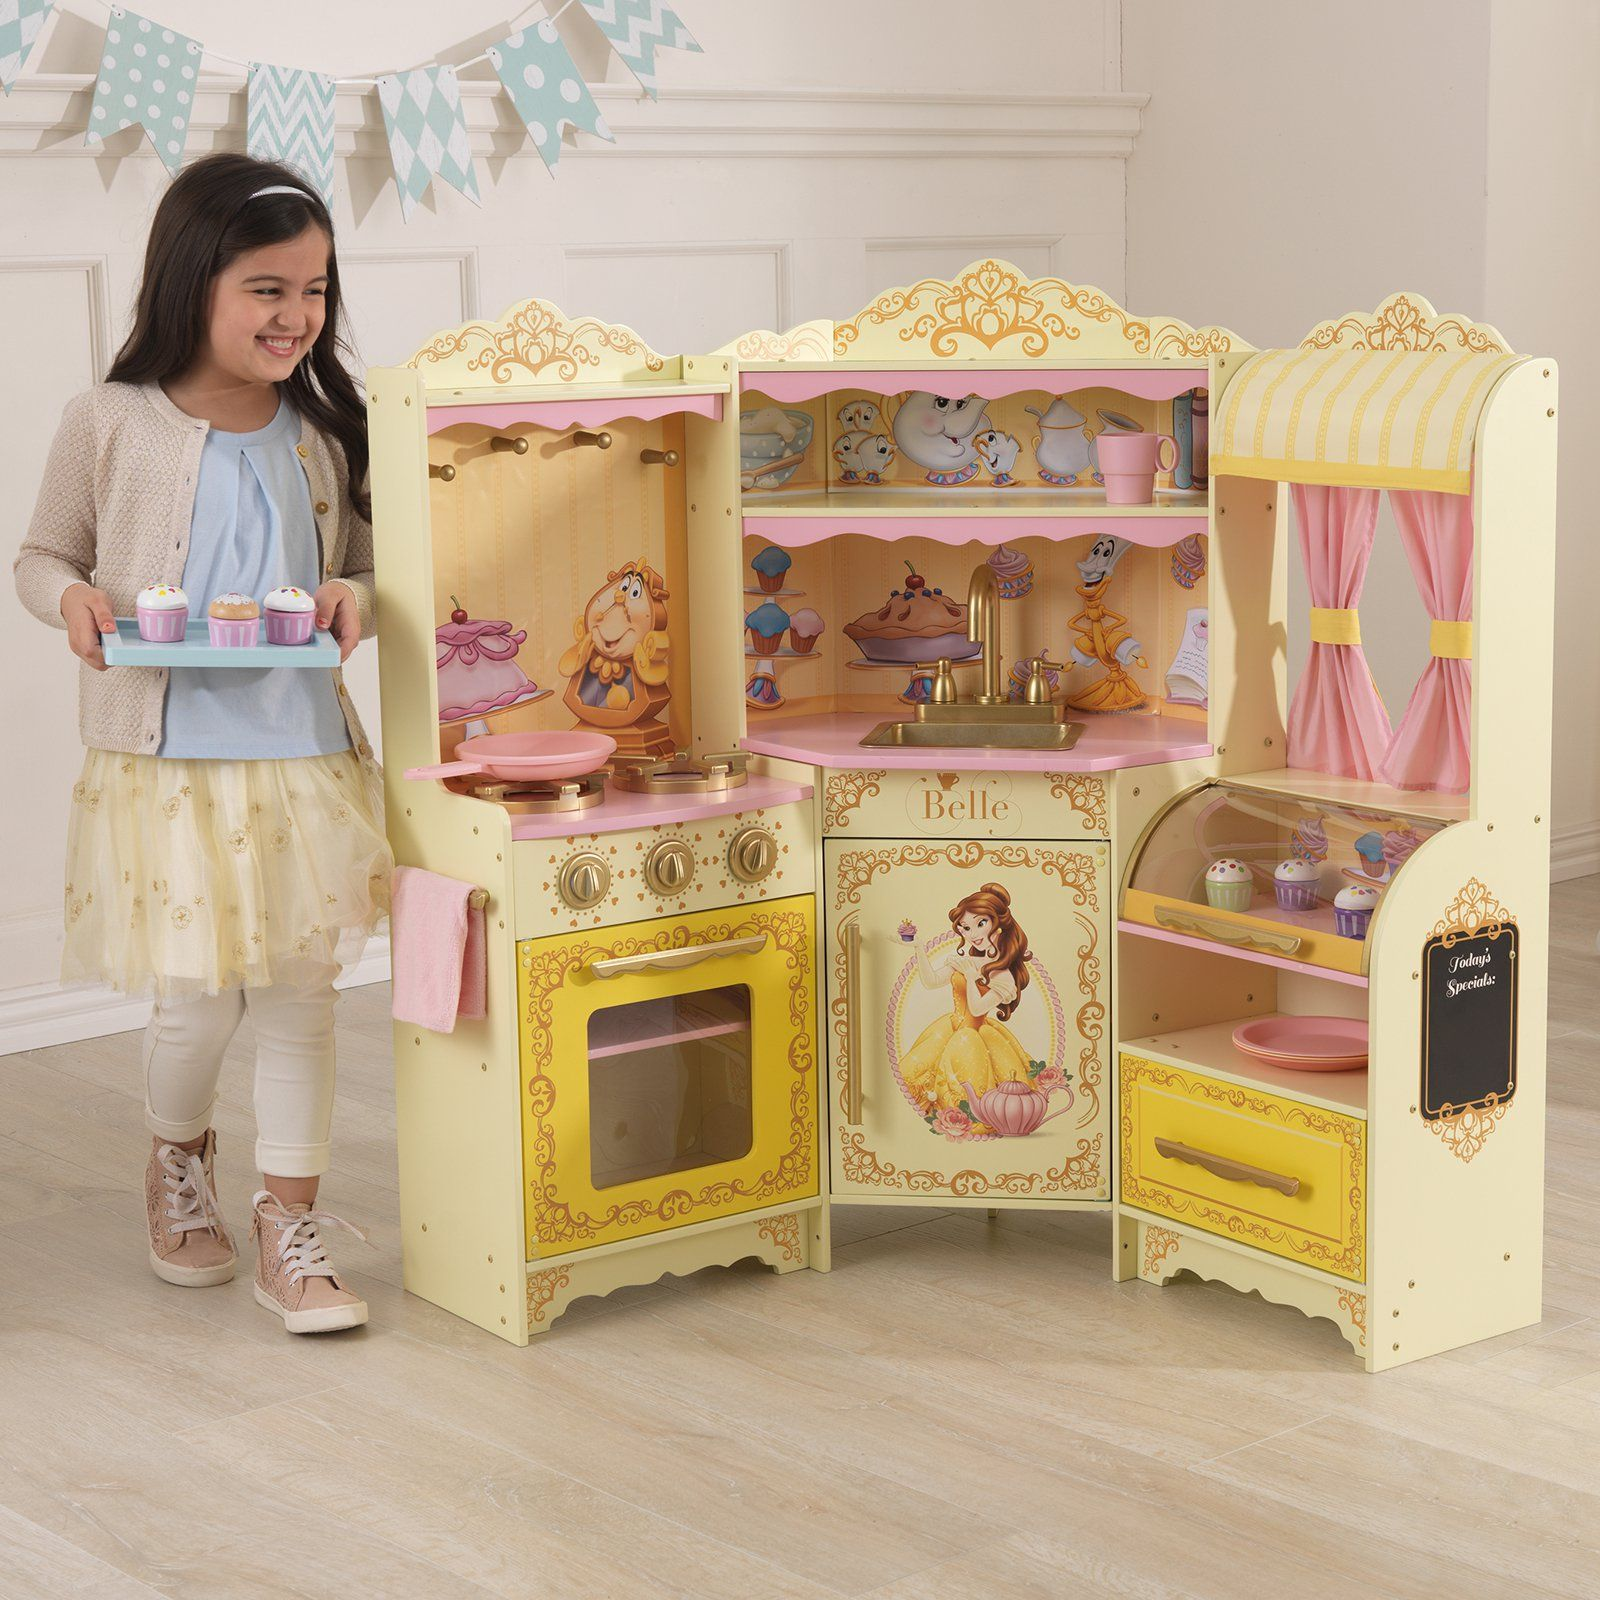 KidKraft Belle French Pastry Kitchen | from hayneedle.com